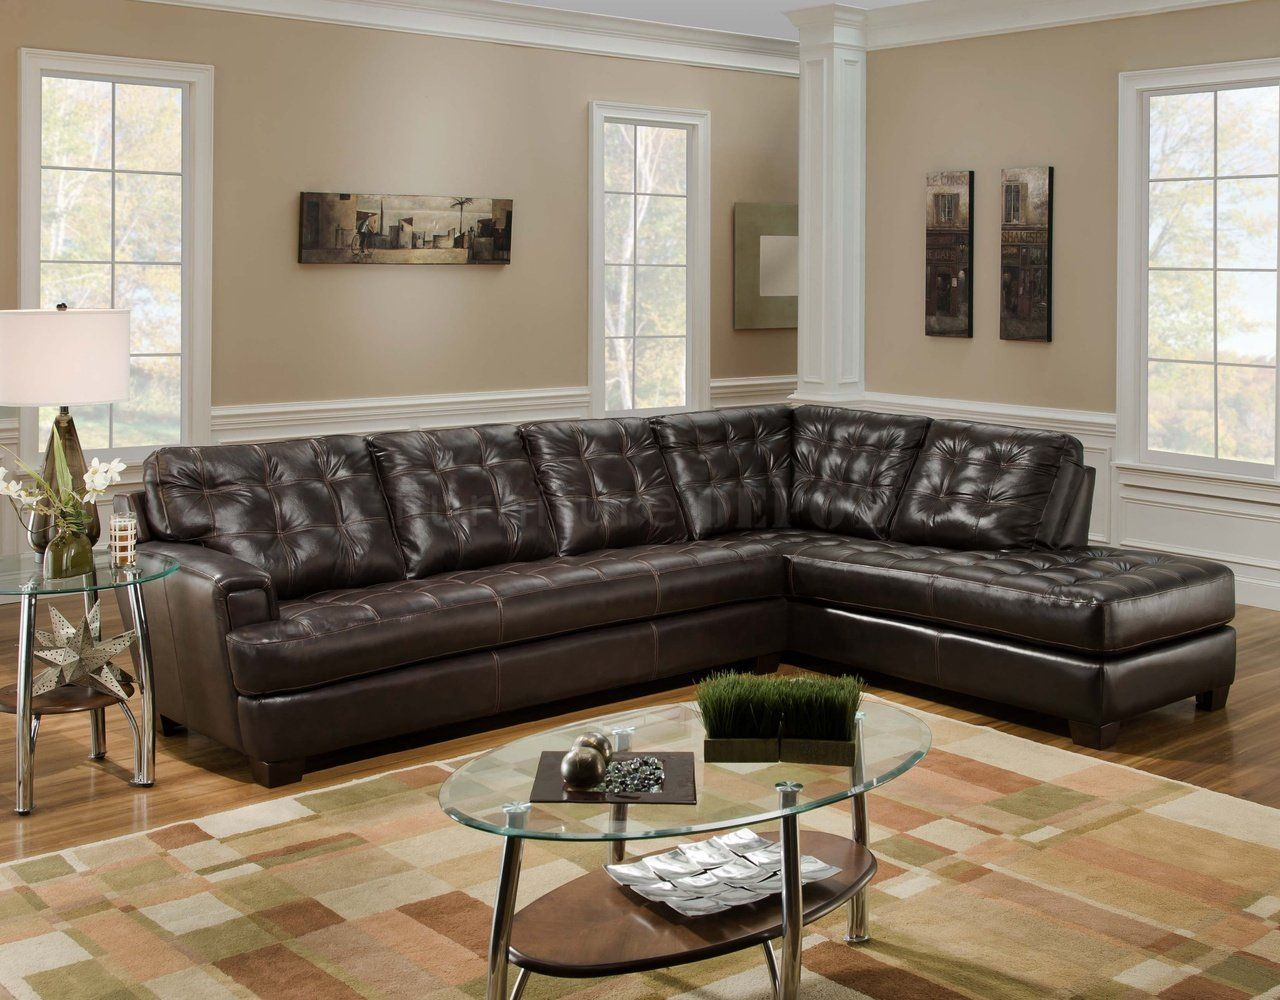 Best L Shape Brown Leather Couch Chicory Brown Tufted Top Grain Leather Modern Sectional Sofa 400 x 300